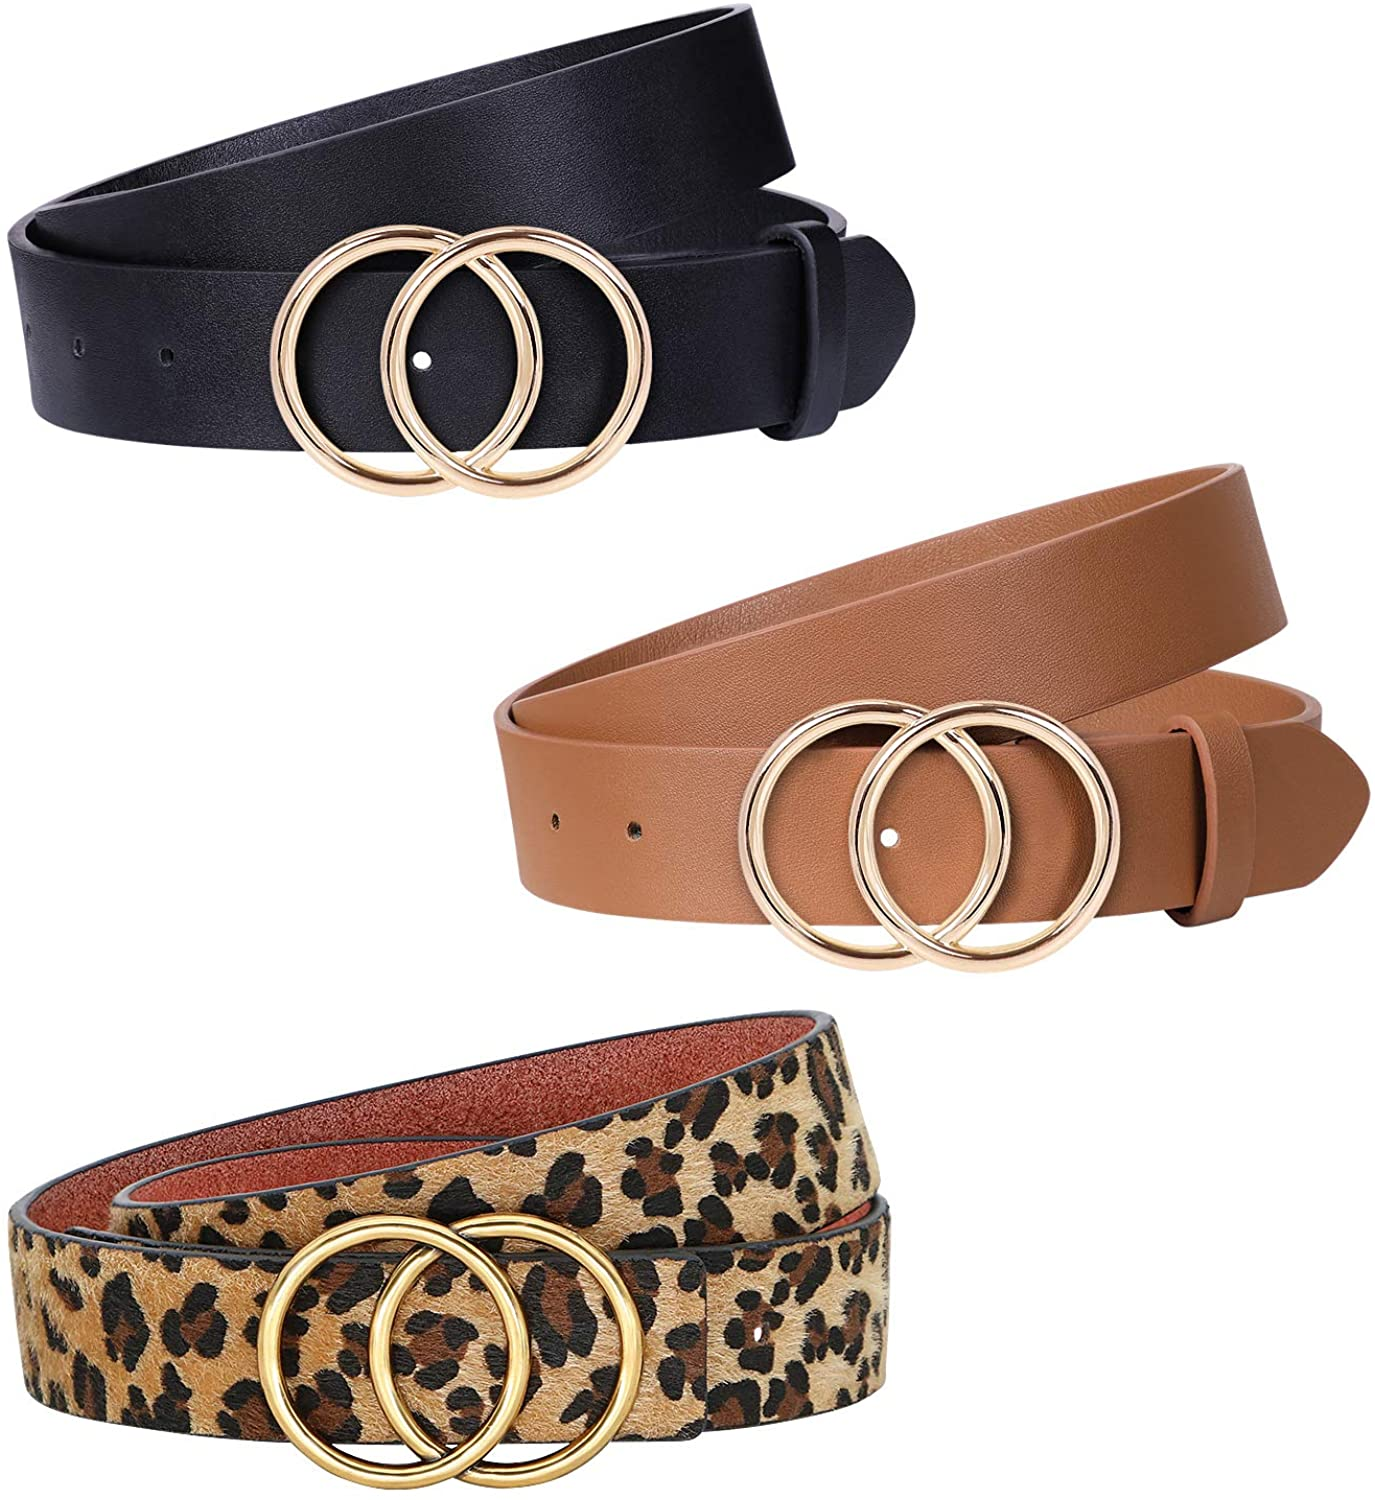 JASGOOD 3 Pack Women Leather Belt for Jeans Pants, Ladies Waist Belts with Double O-Ring Buckle